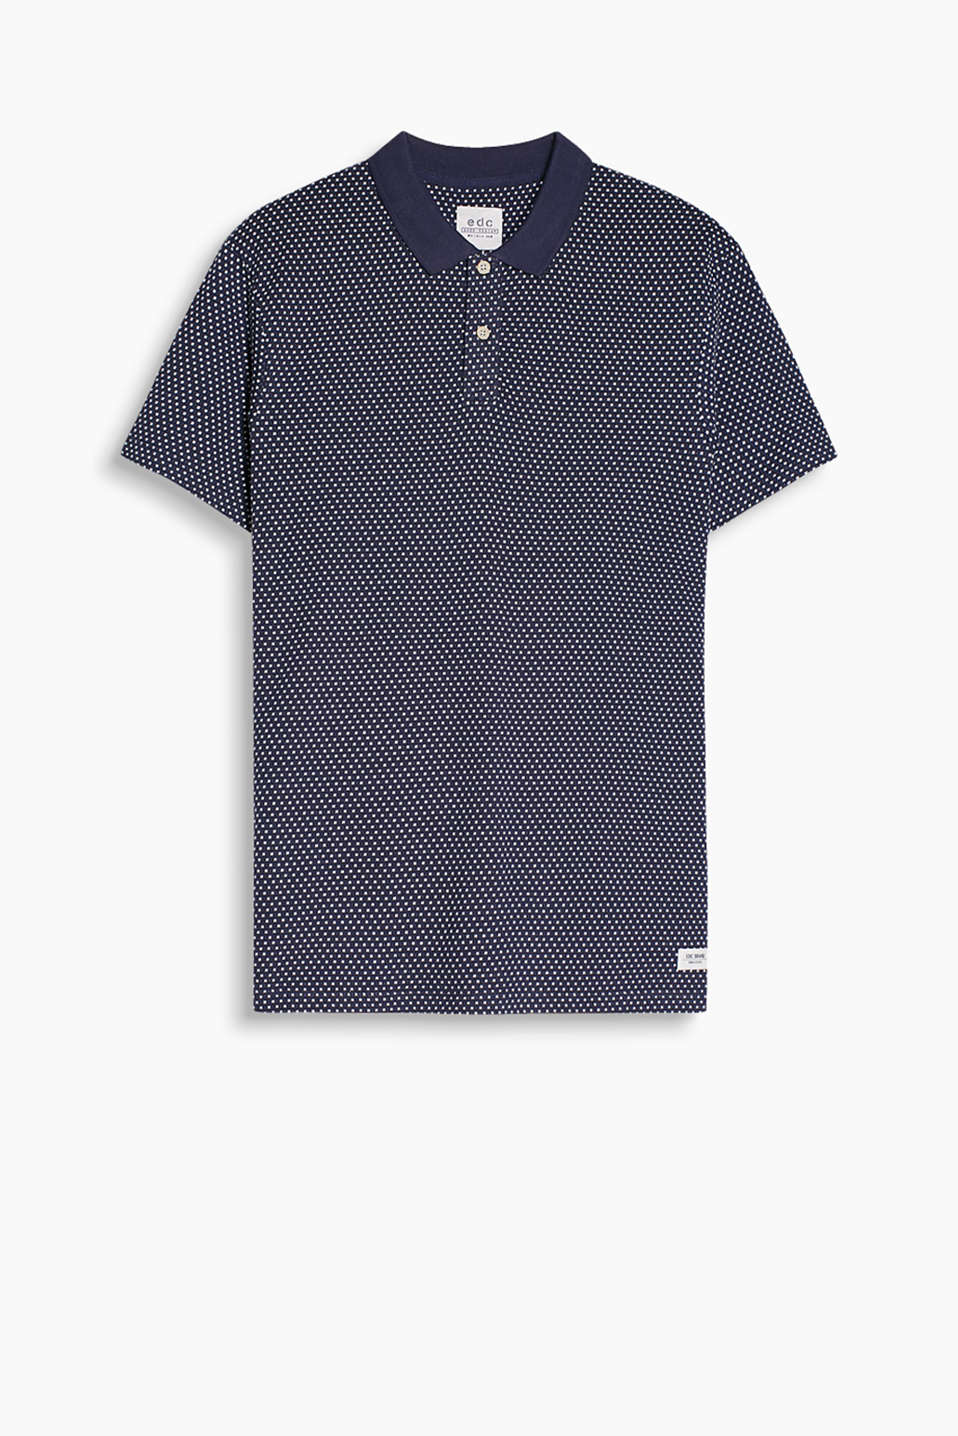 100% cotton polo shirt made of lush jacquard fabric